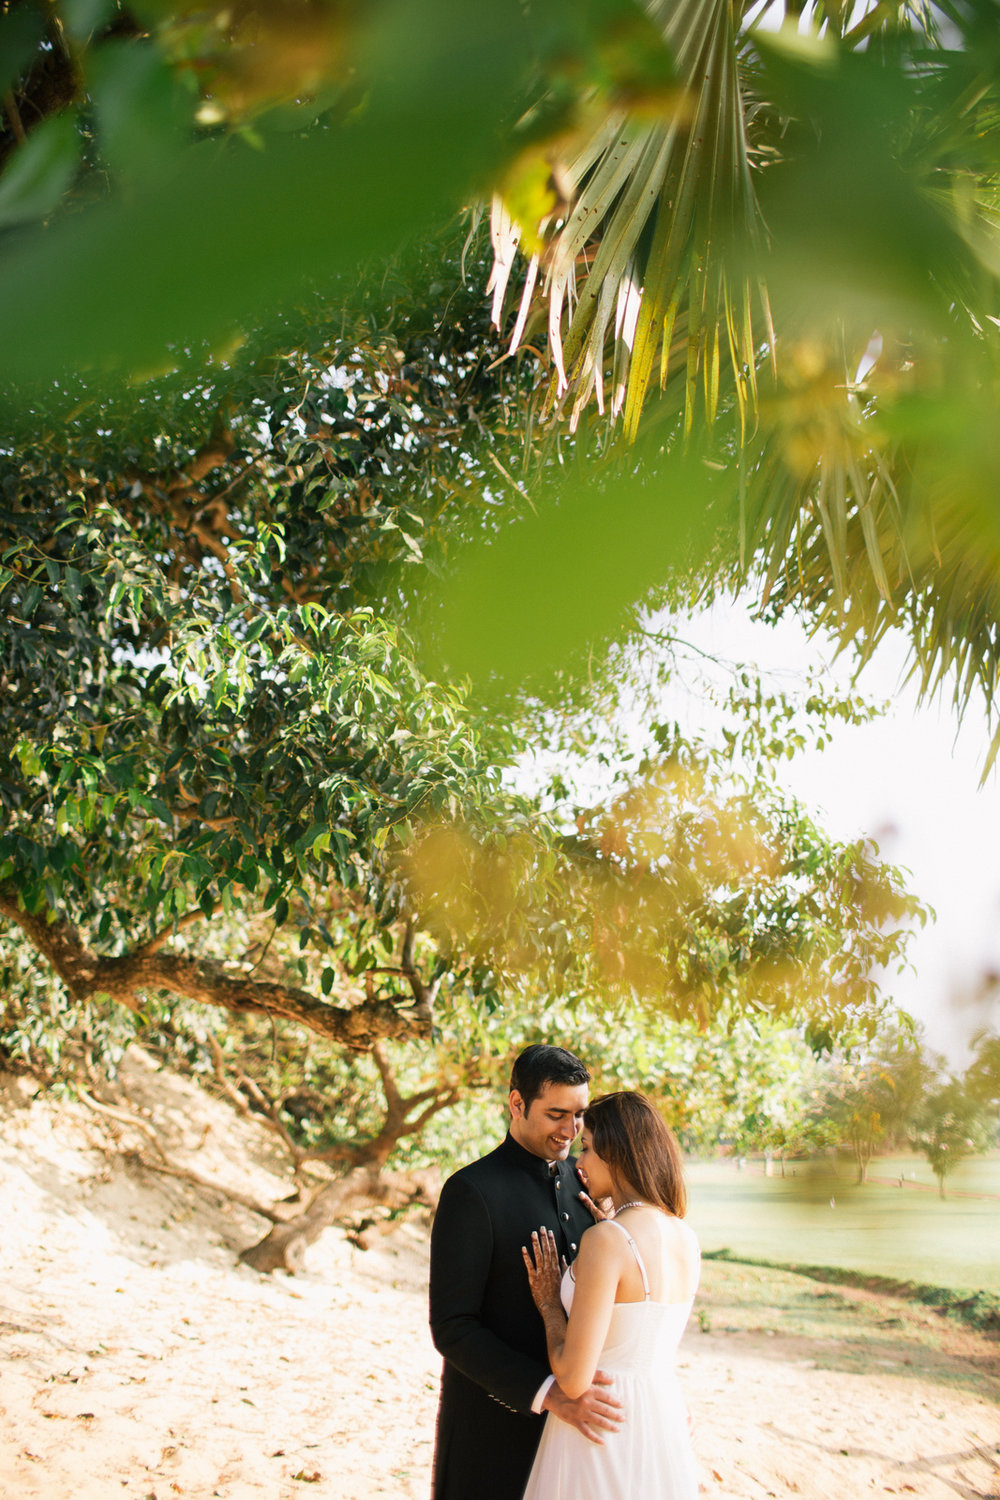 goa-beach-pre-wedding-couple-session-into-candid-photography-mk-27.jpg